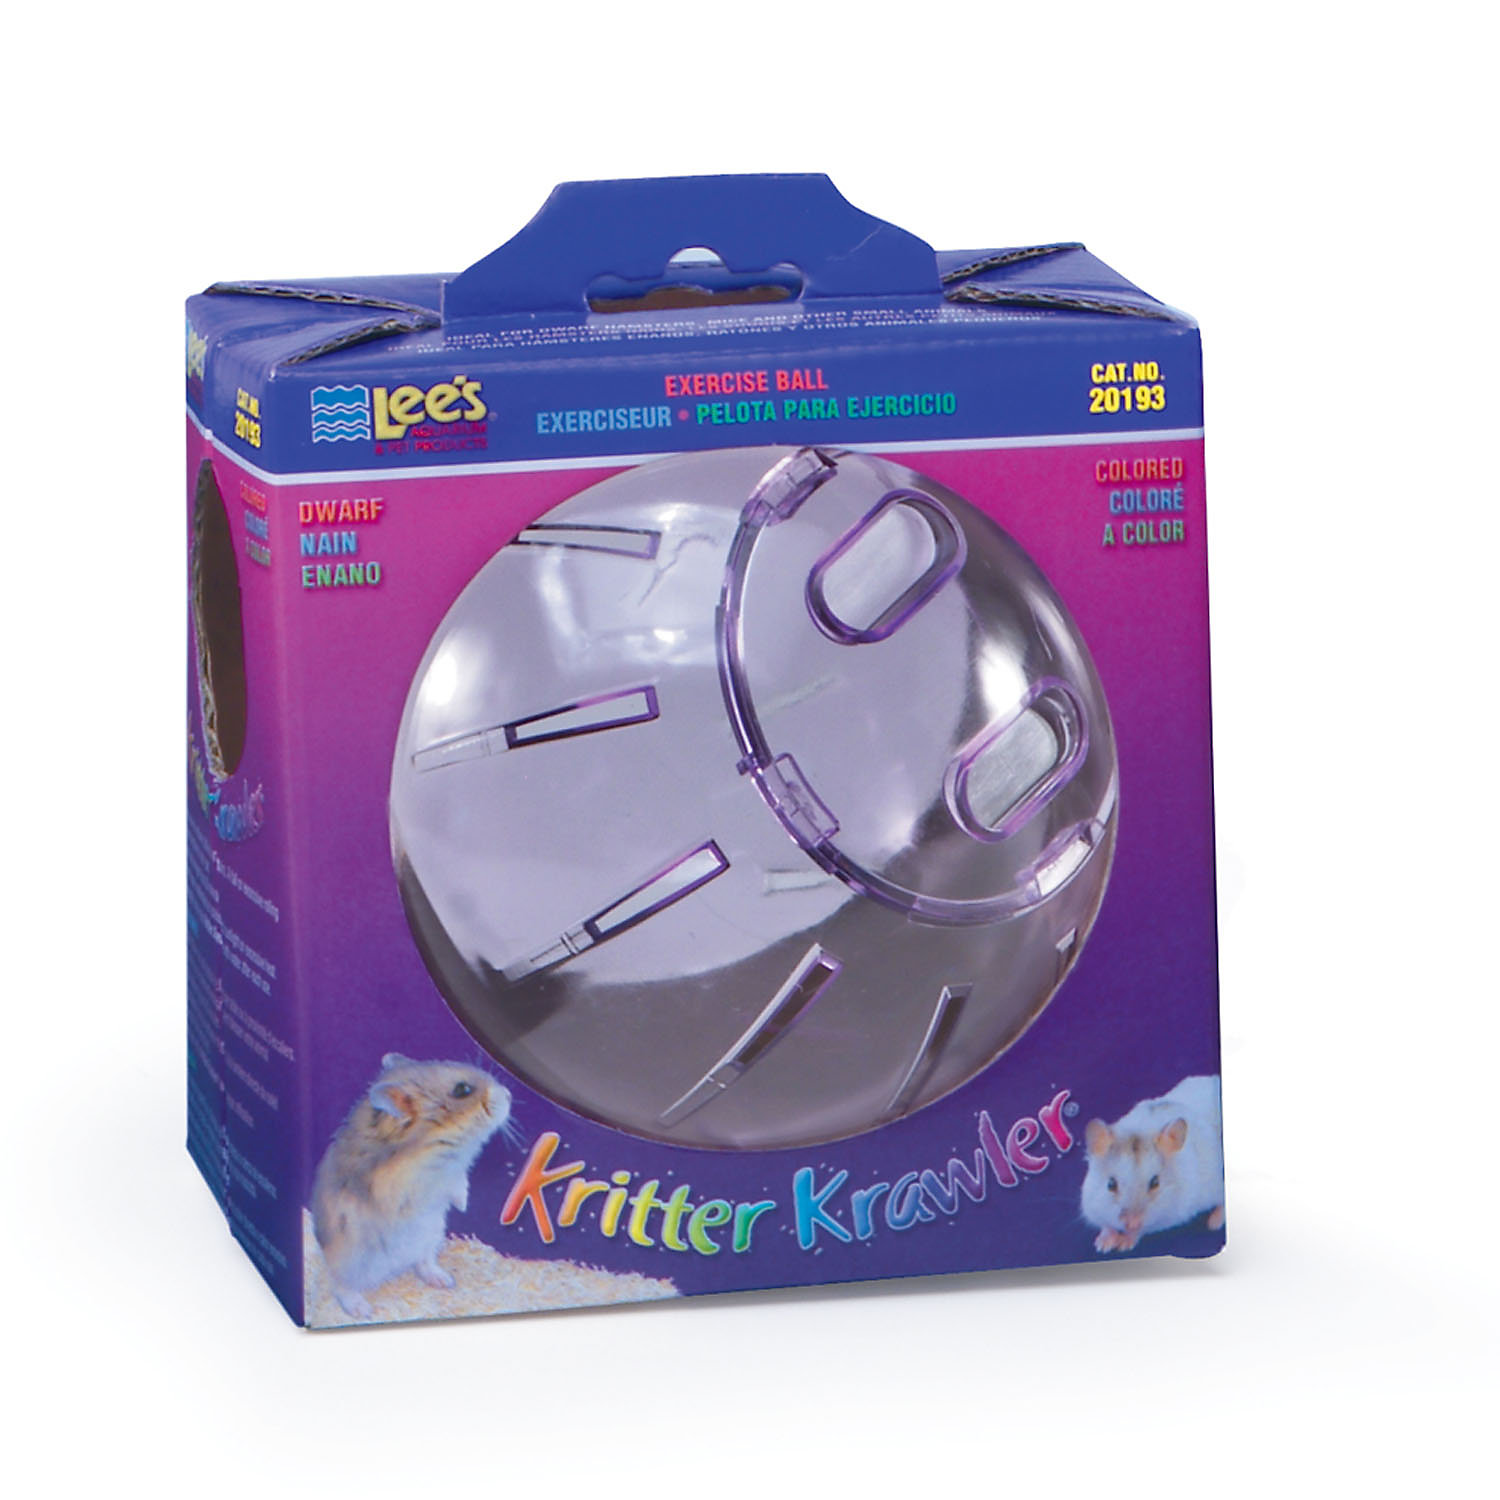 Lees Kritter Krawler Colored Small Animal Ball